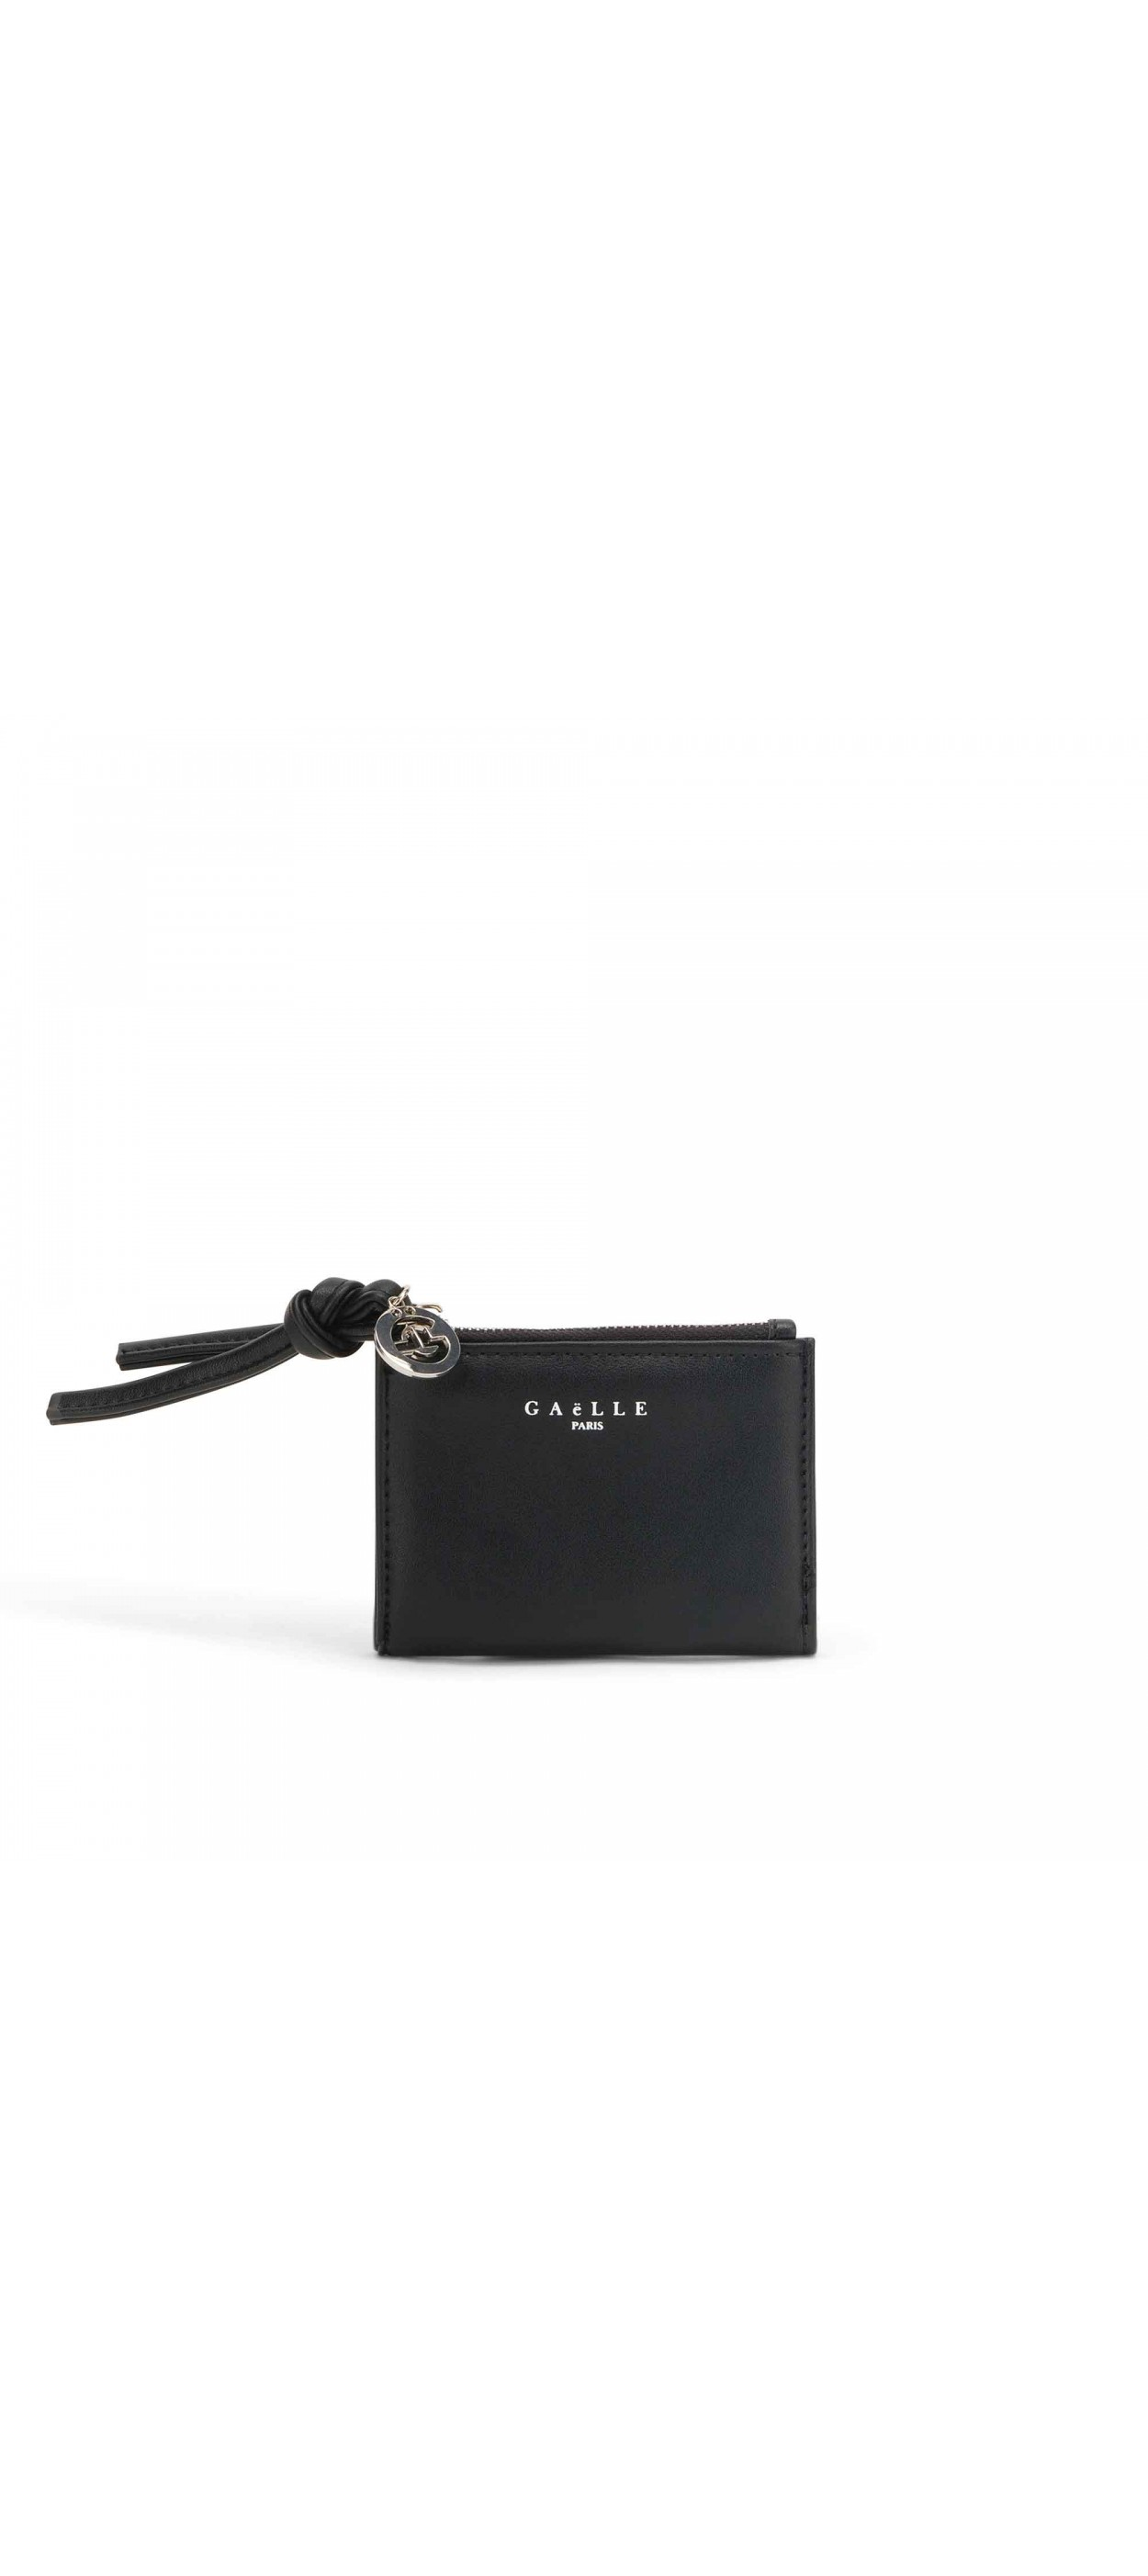 CARD HOLDER - GBDA1833 - GAELLE PARIS